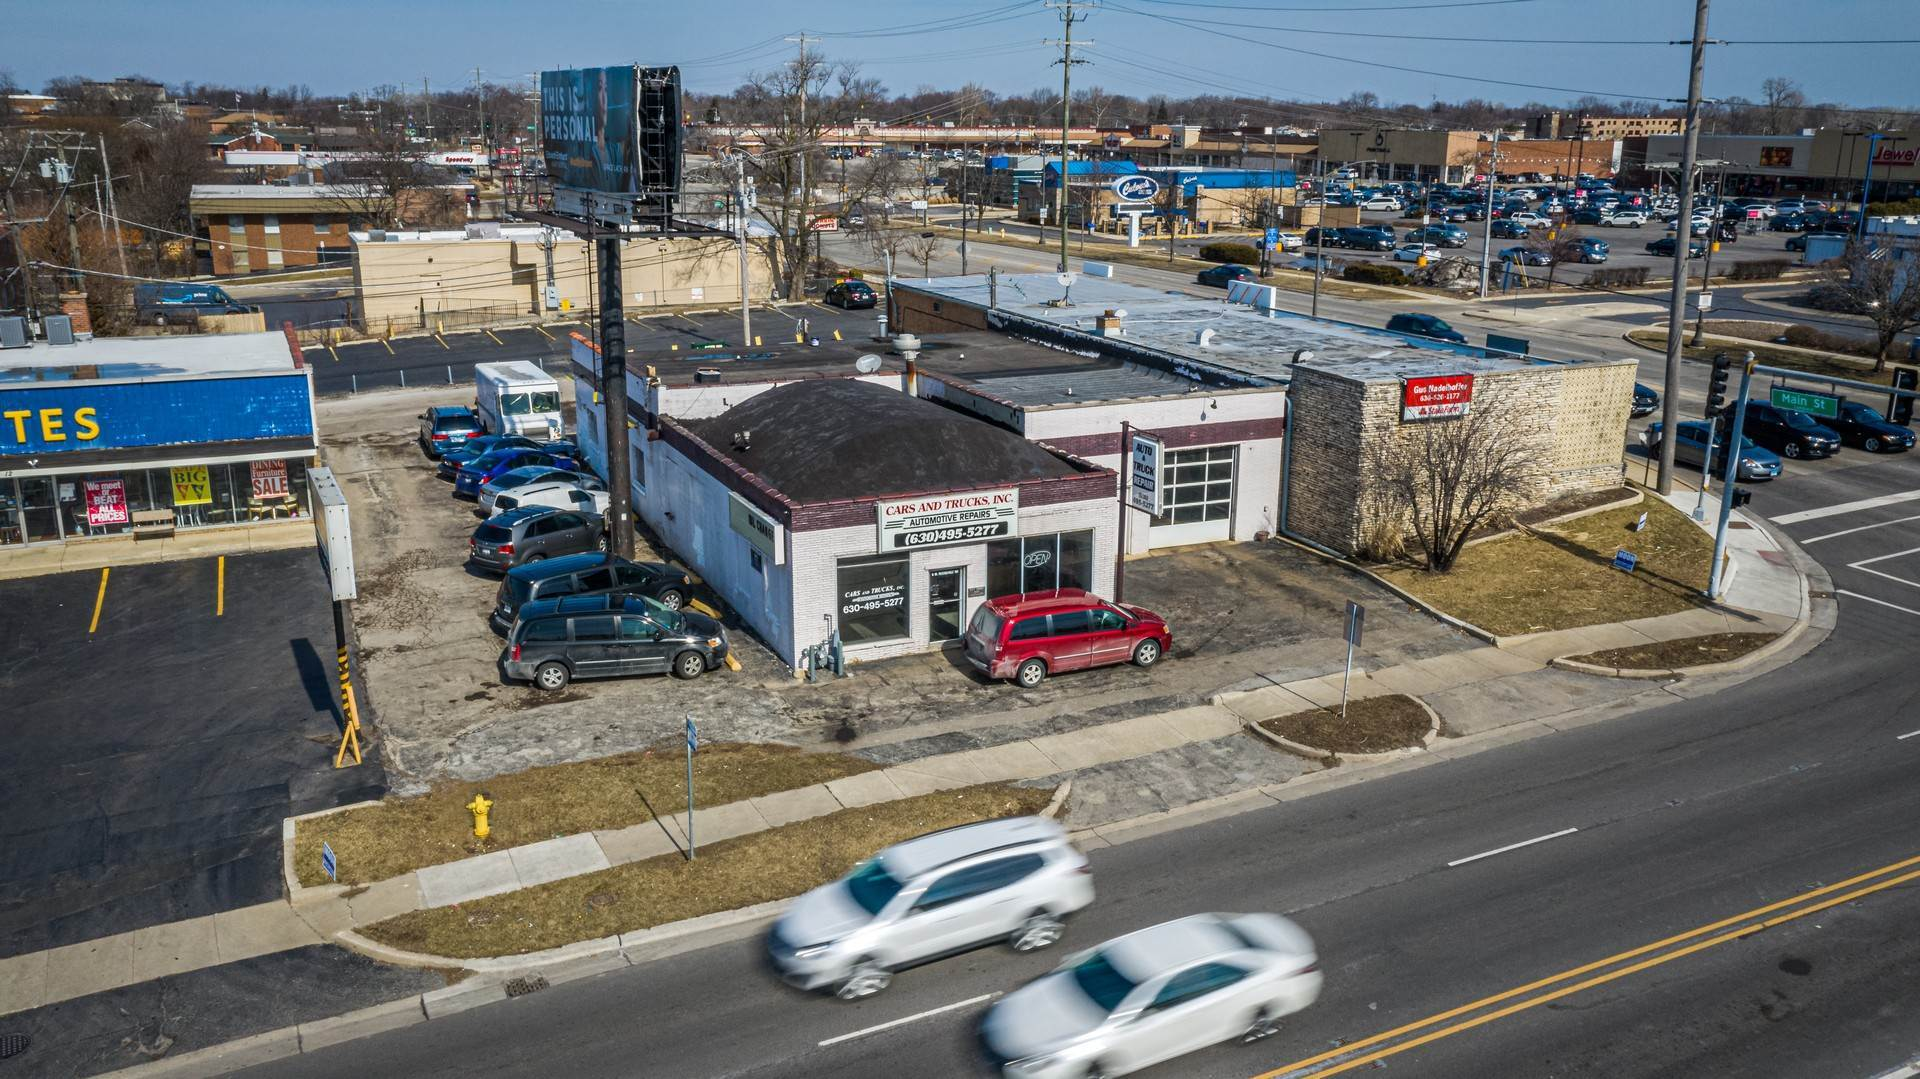 Commercial for Sale at 6 W Roosevelt Road Lombard, Illinois 60148 United States